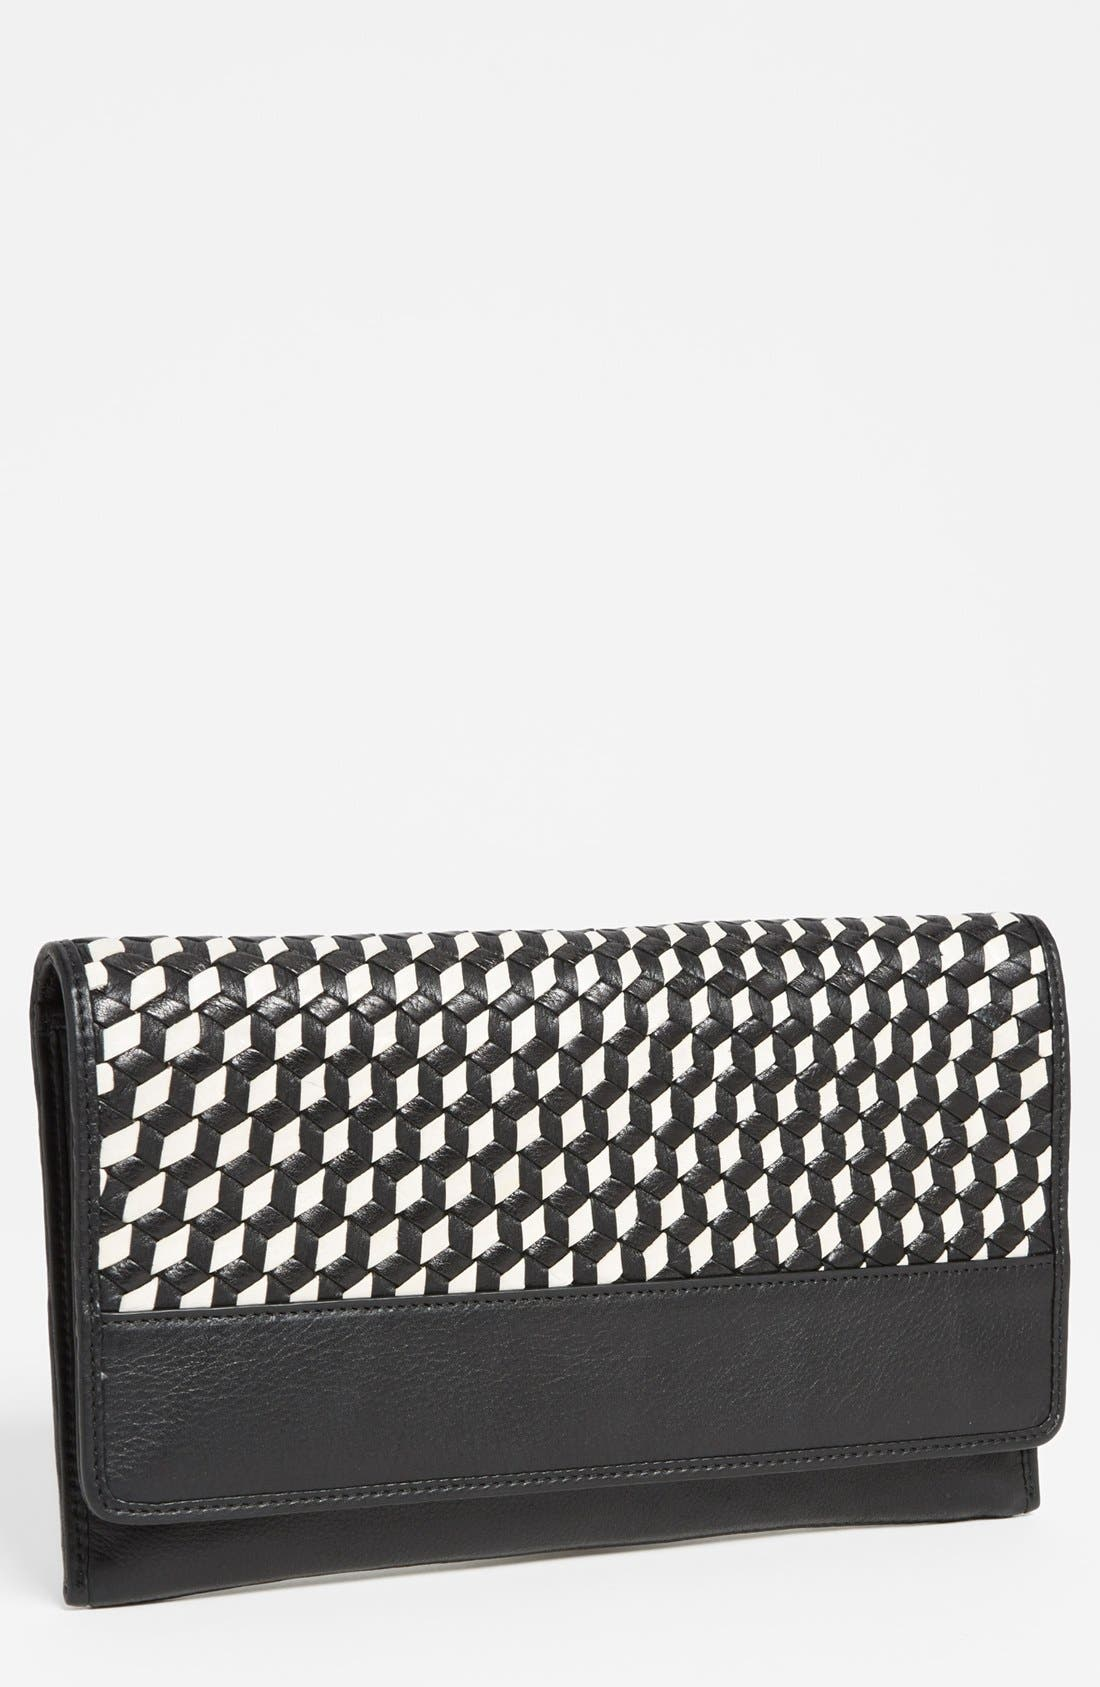 Alternate Image 1 Selected - Cole Haan 'Parker' Envelope Clutch